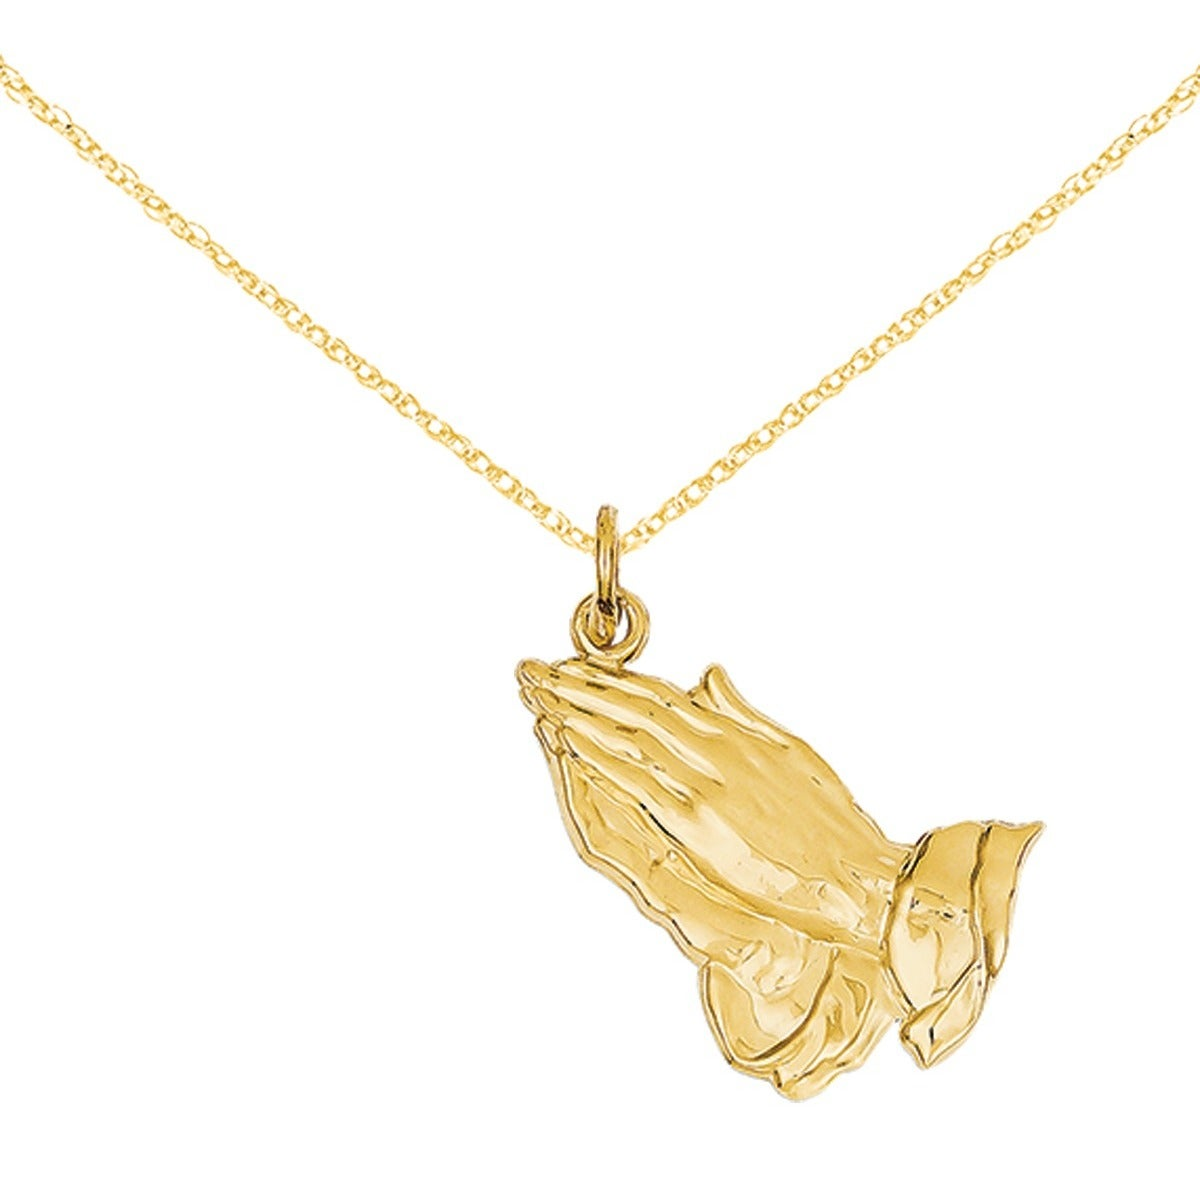 Shop 14k gold praying hands pendant with 18 inch chain free shop 14k gold praying hands pendant with 18 inch chain free shipping today overstock 14679230 aloadofball Choice Image